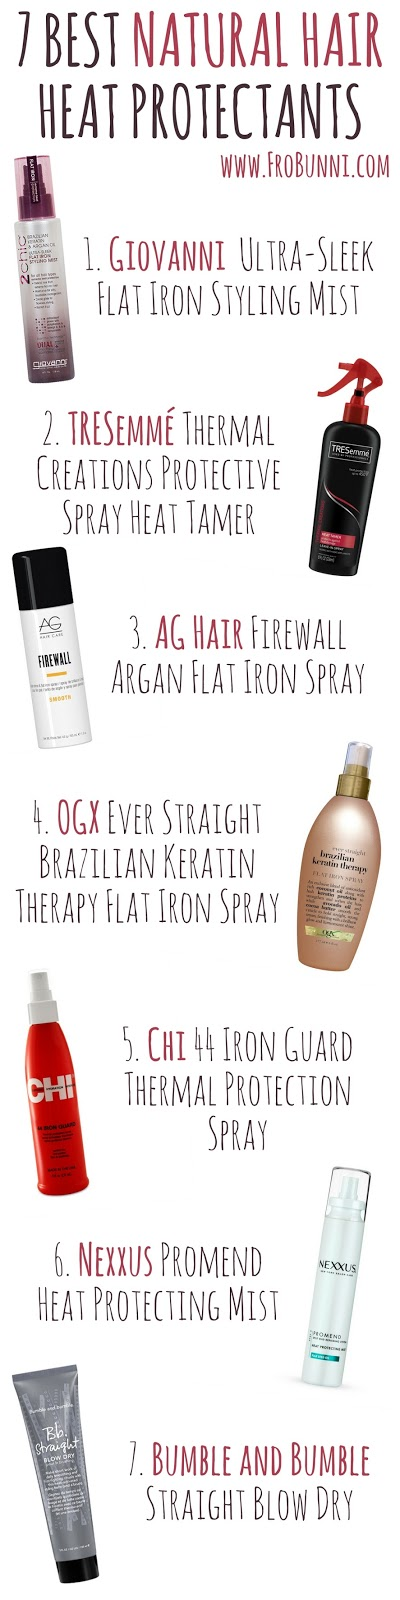 Frobunni 10 Tips For Using Heat Safely On Natural Hair